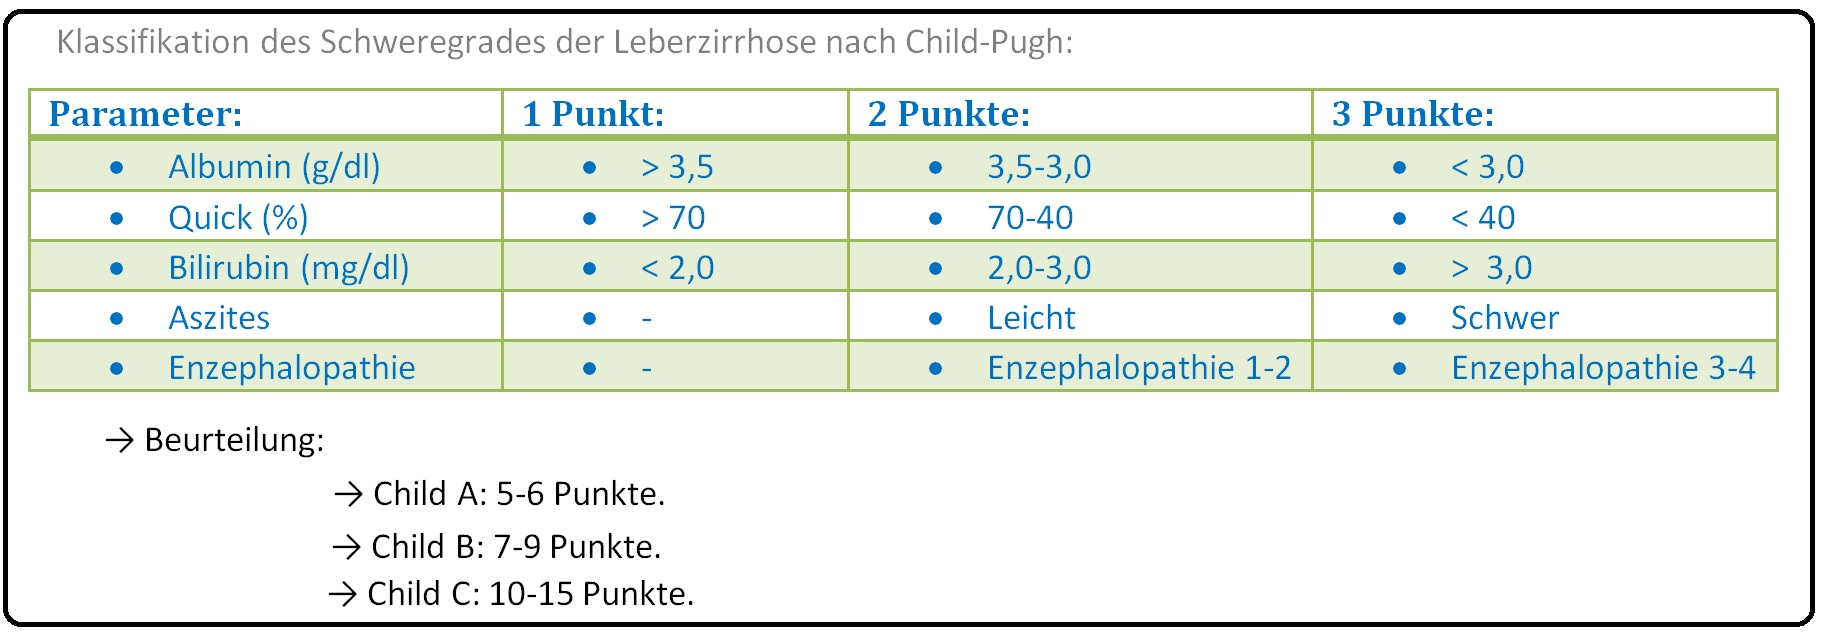 444 Klassifikation des Schweregrades der Leberzirrhose nach Child Pugh